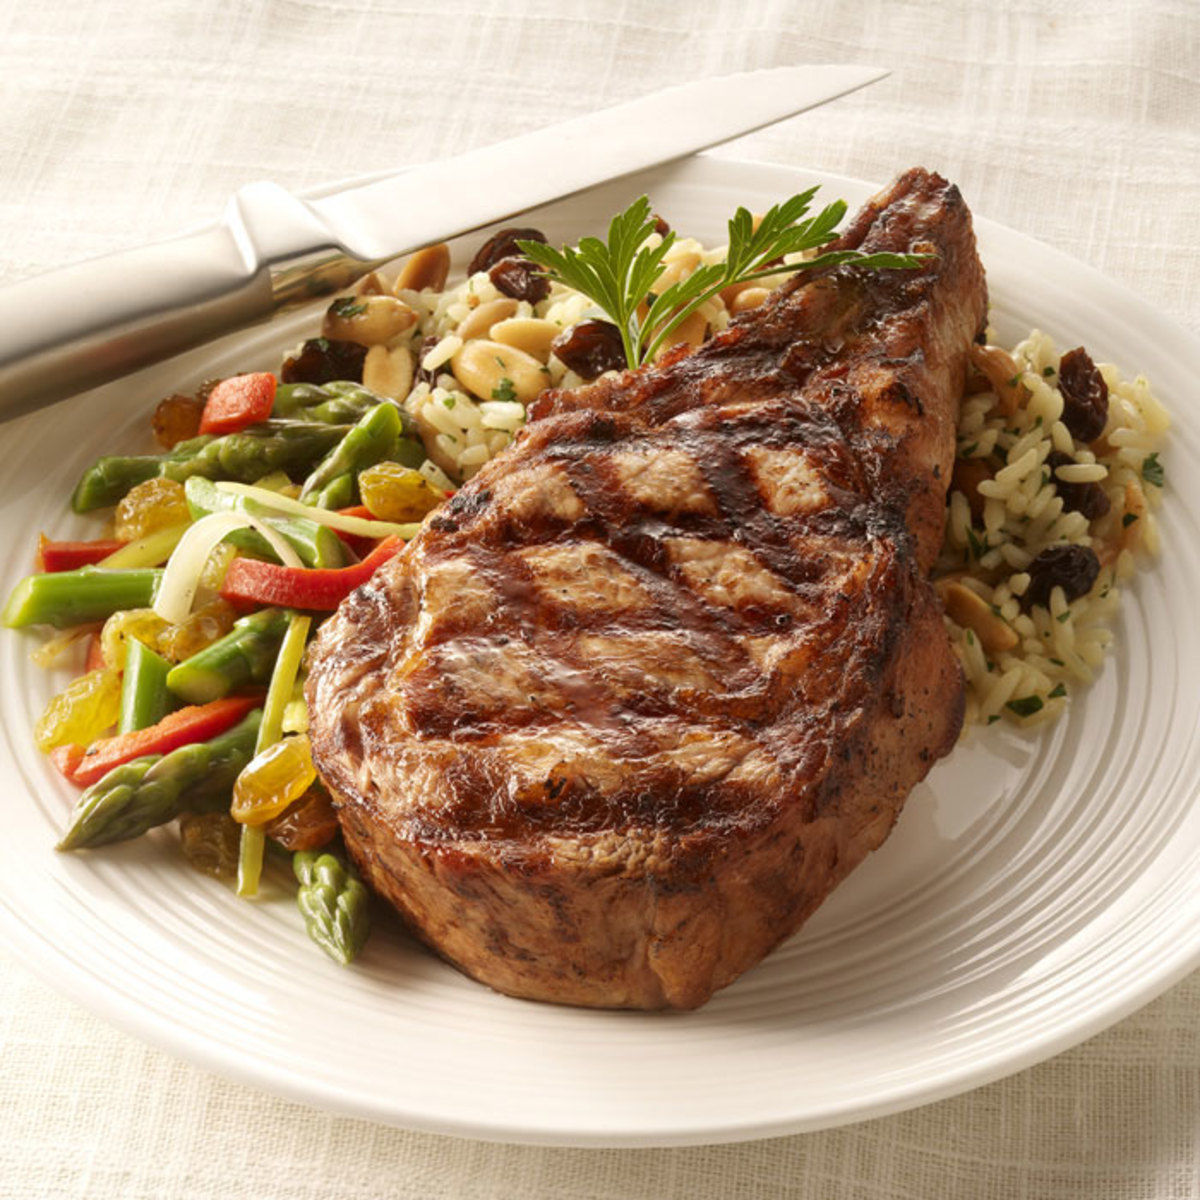 Grilled Veal Chop with Raisin-Rice Pilaf